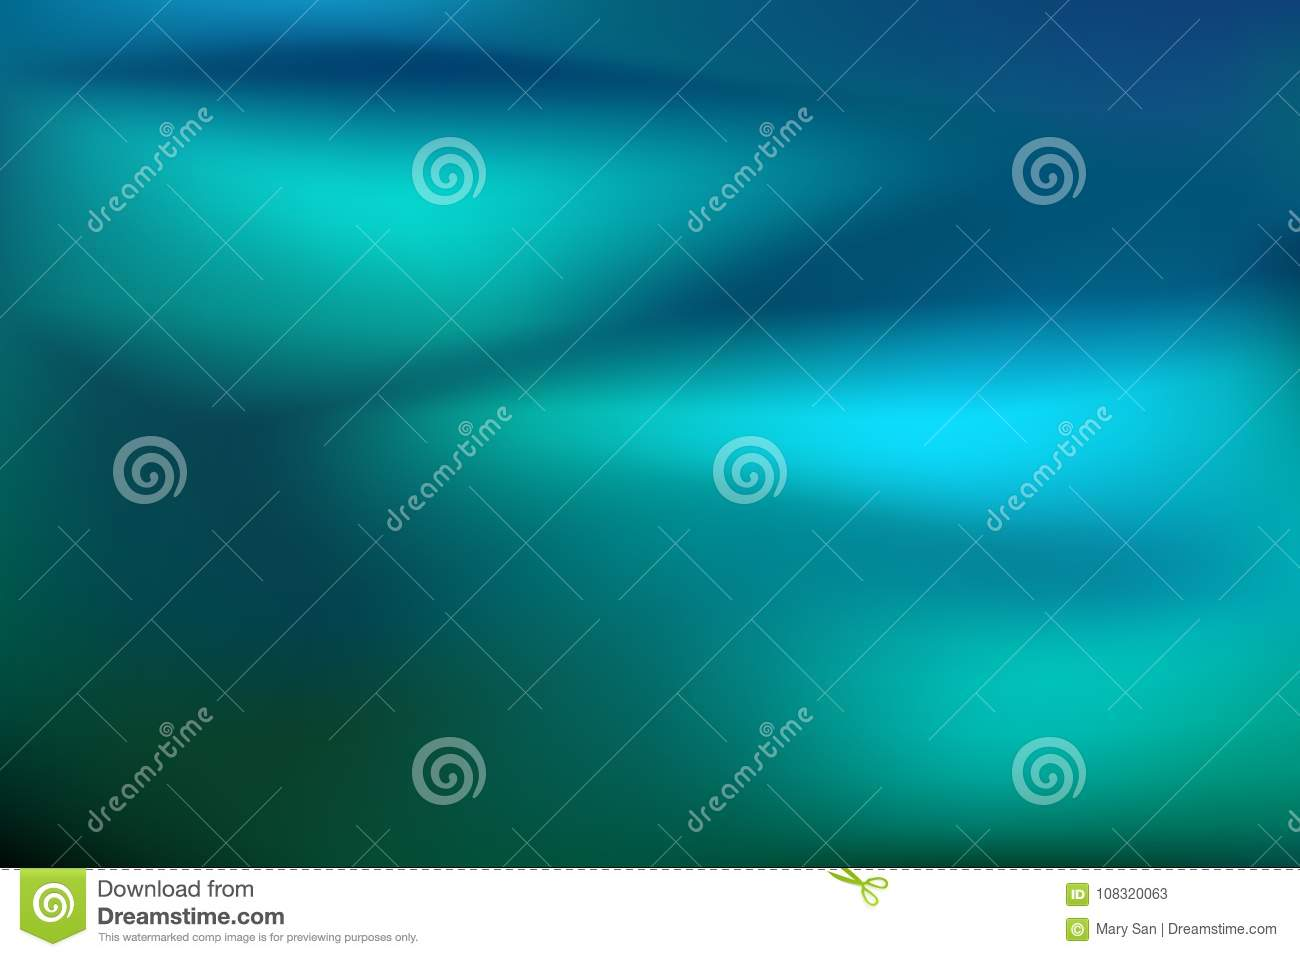 Abstract teal background. Blurred turquoise water backdrop. Vector illustration for your graphic design banner or aqua